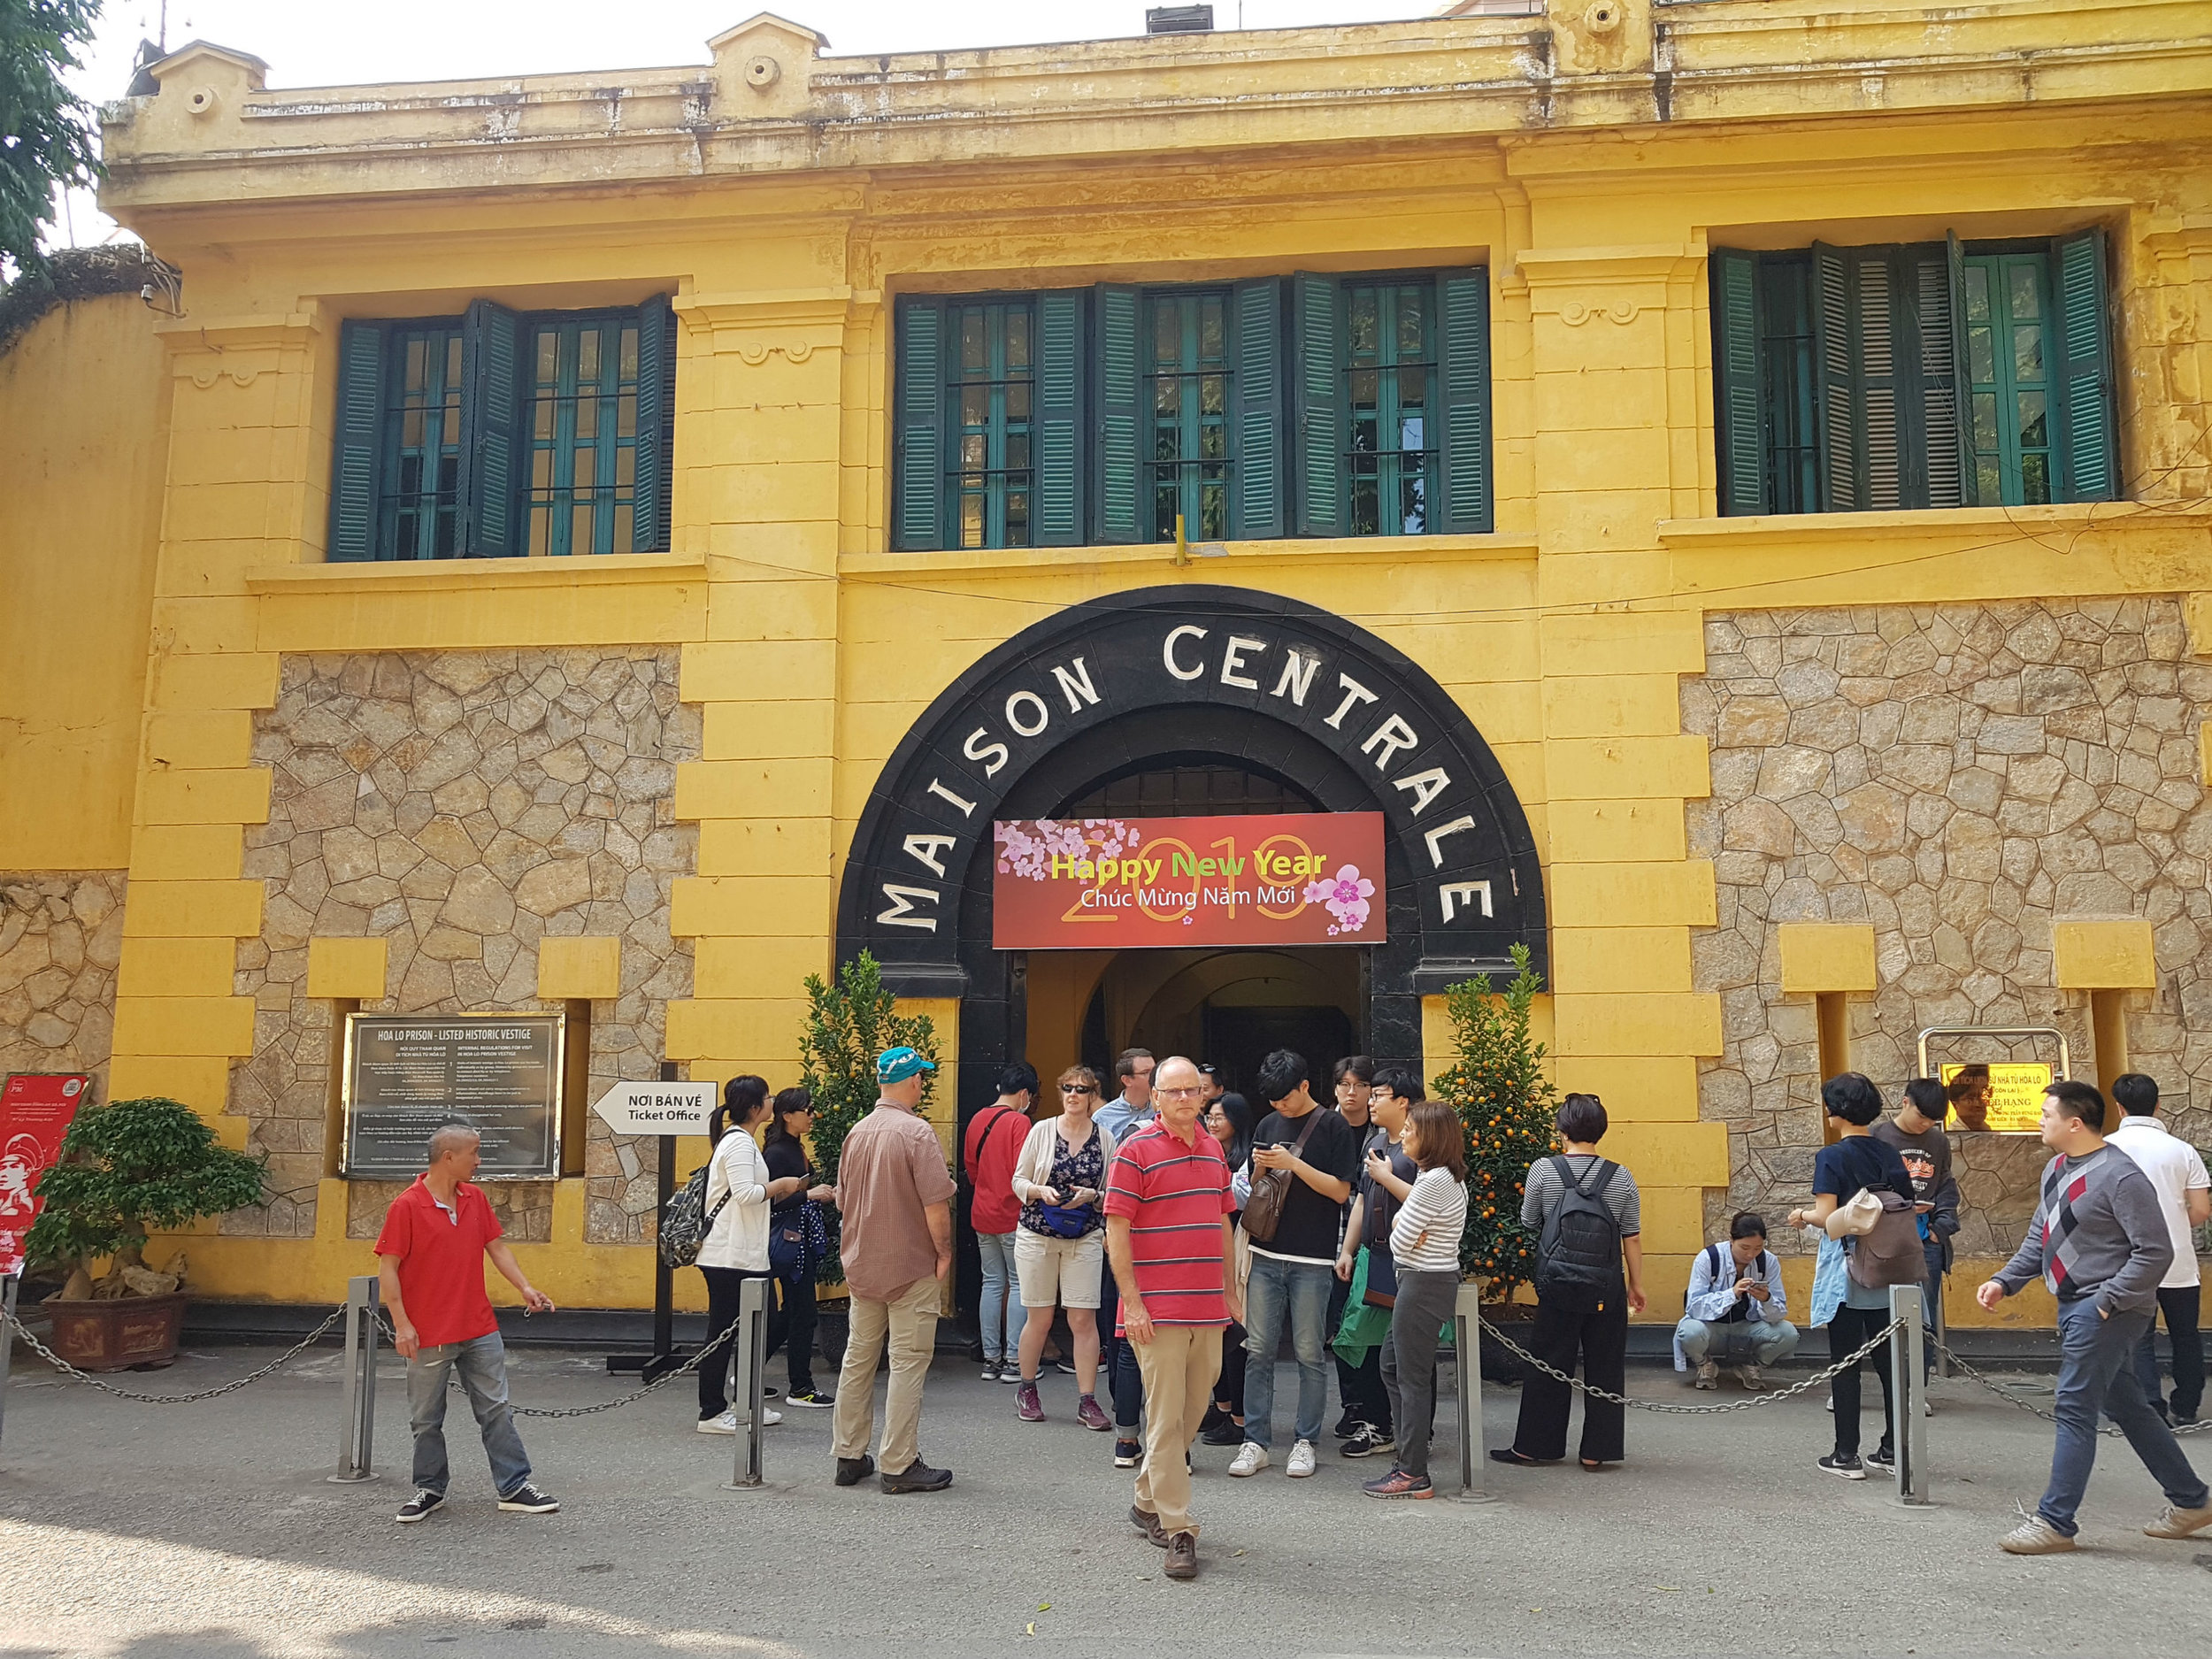 Entrance to the Hoa Lo Prison museum